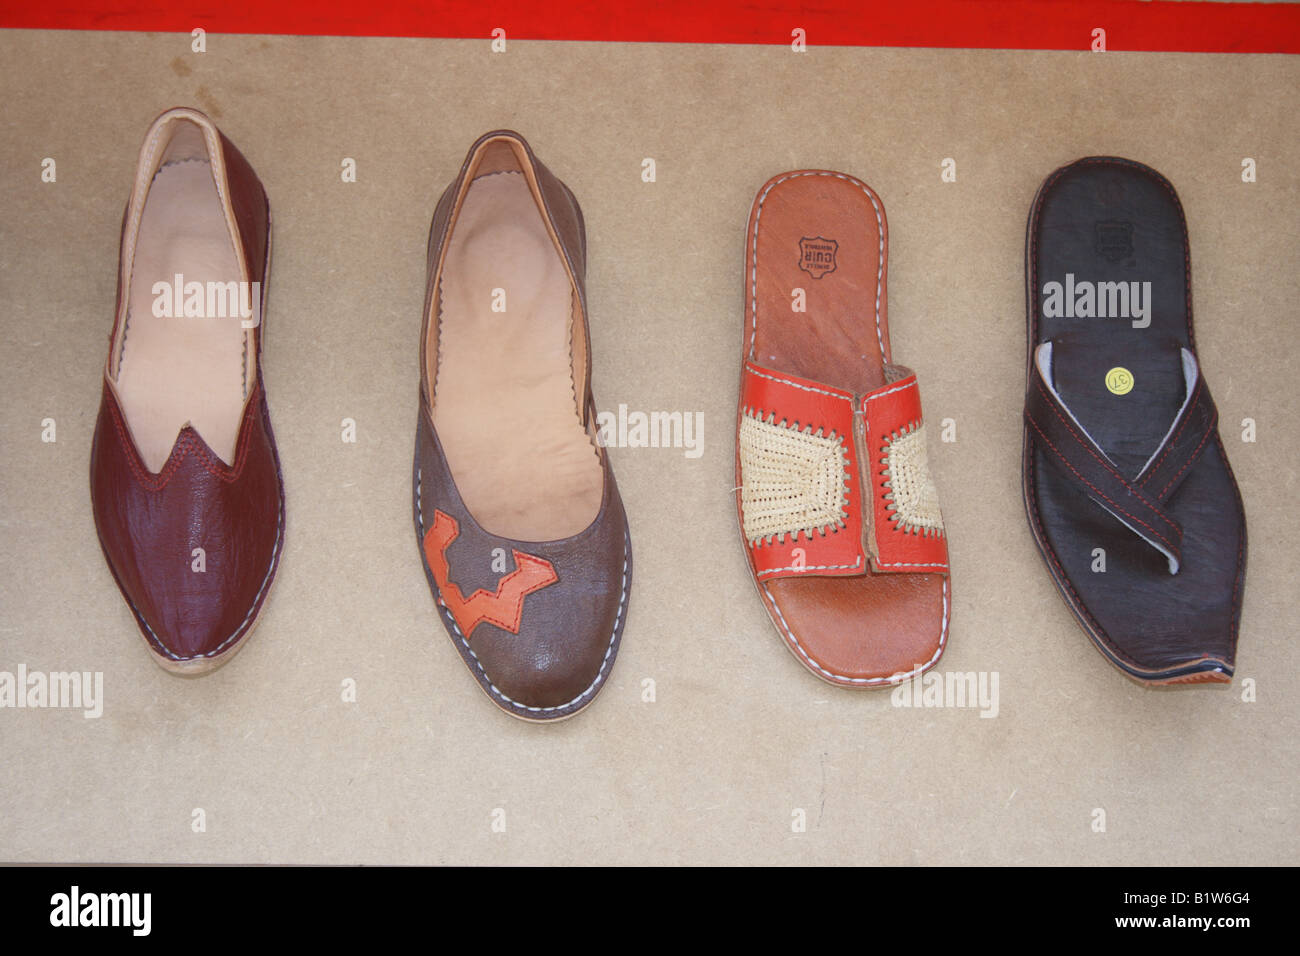 852744fb1355 various hand made leather ladies  shoes. Photo by Willy Matheisl - Stock  Image